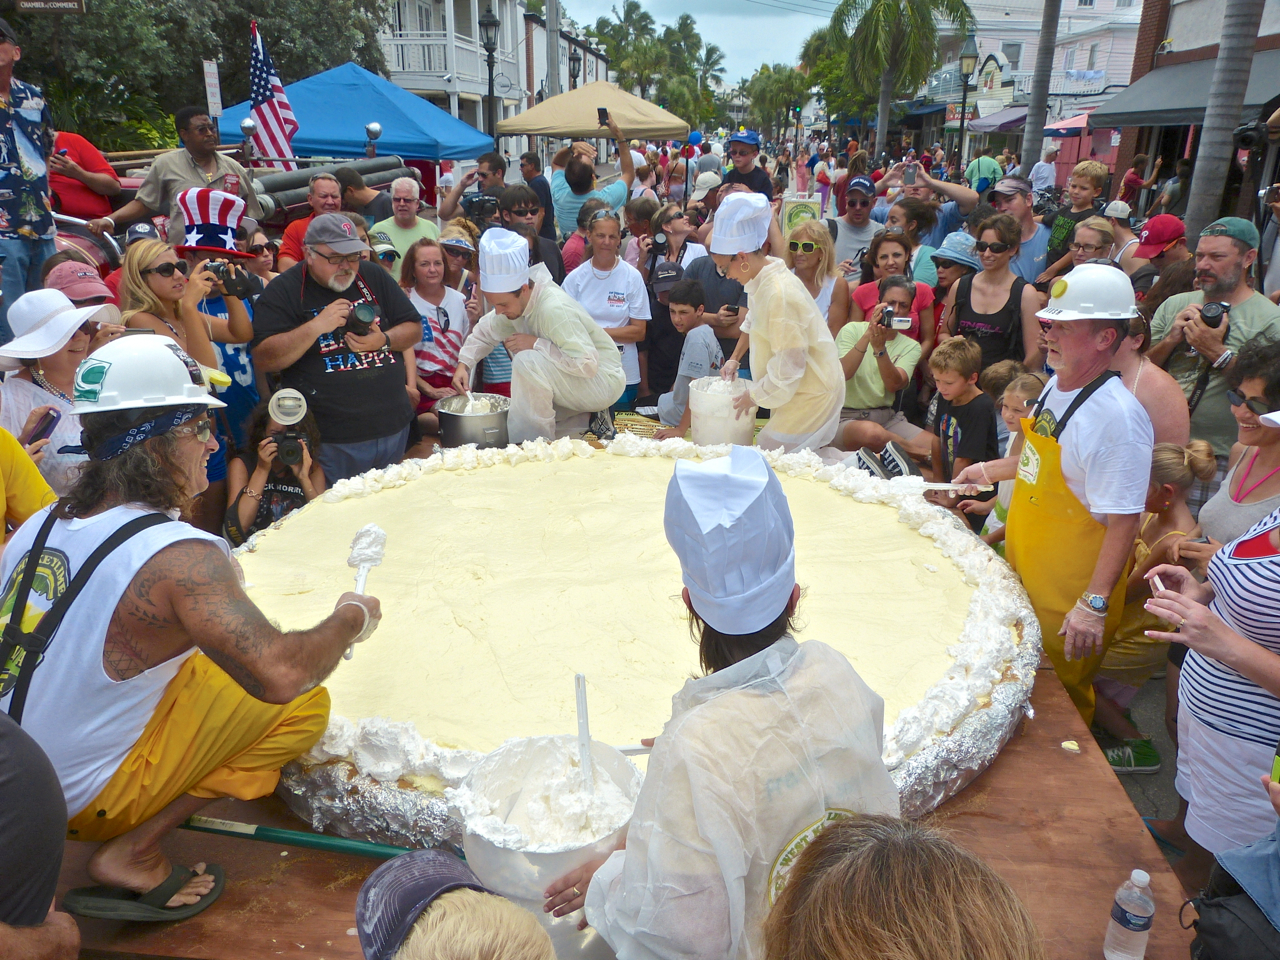 The Biggest Key Lime Pie Ever Made - Key West!